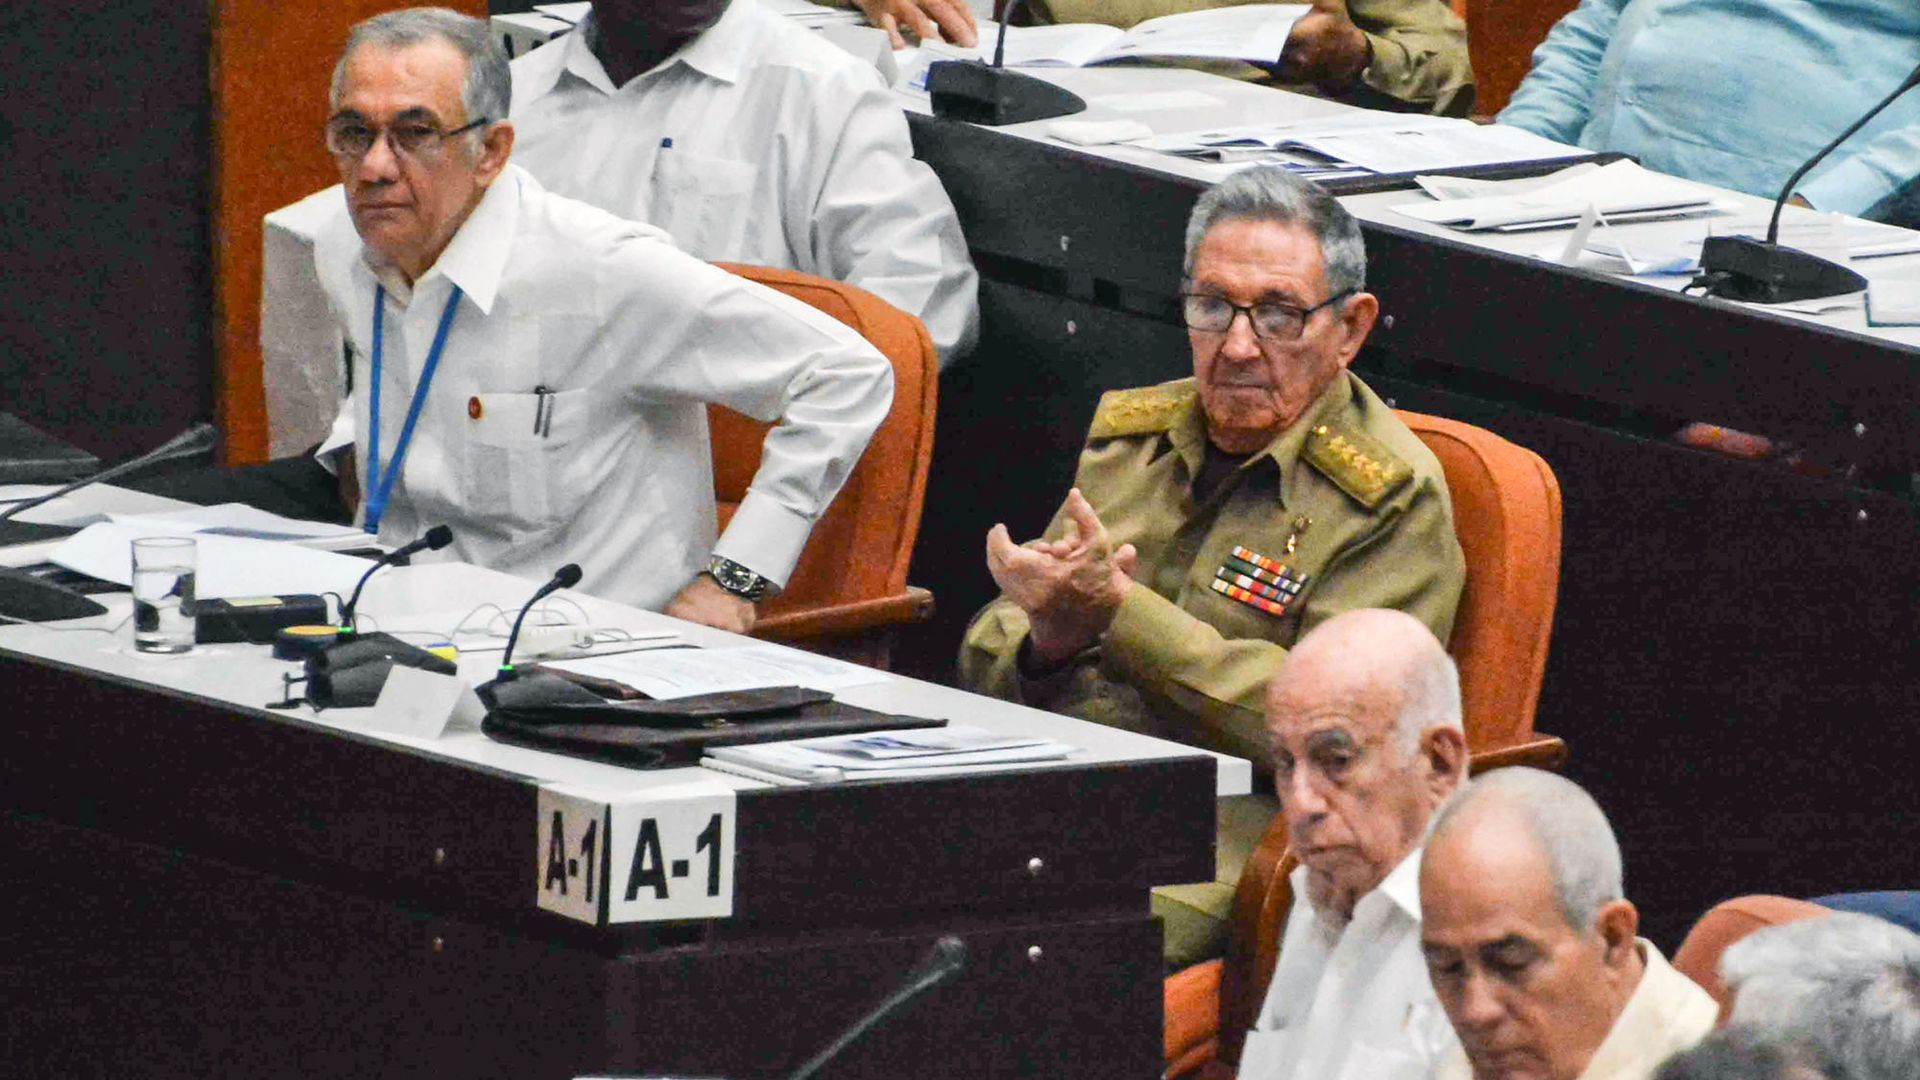 Former Cuban President Raul Castro at a National Assembly's session to present discussing new constitutional reforms. Photo: Jorge Beltran/AFP/Getty Images